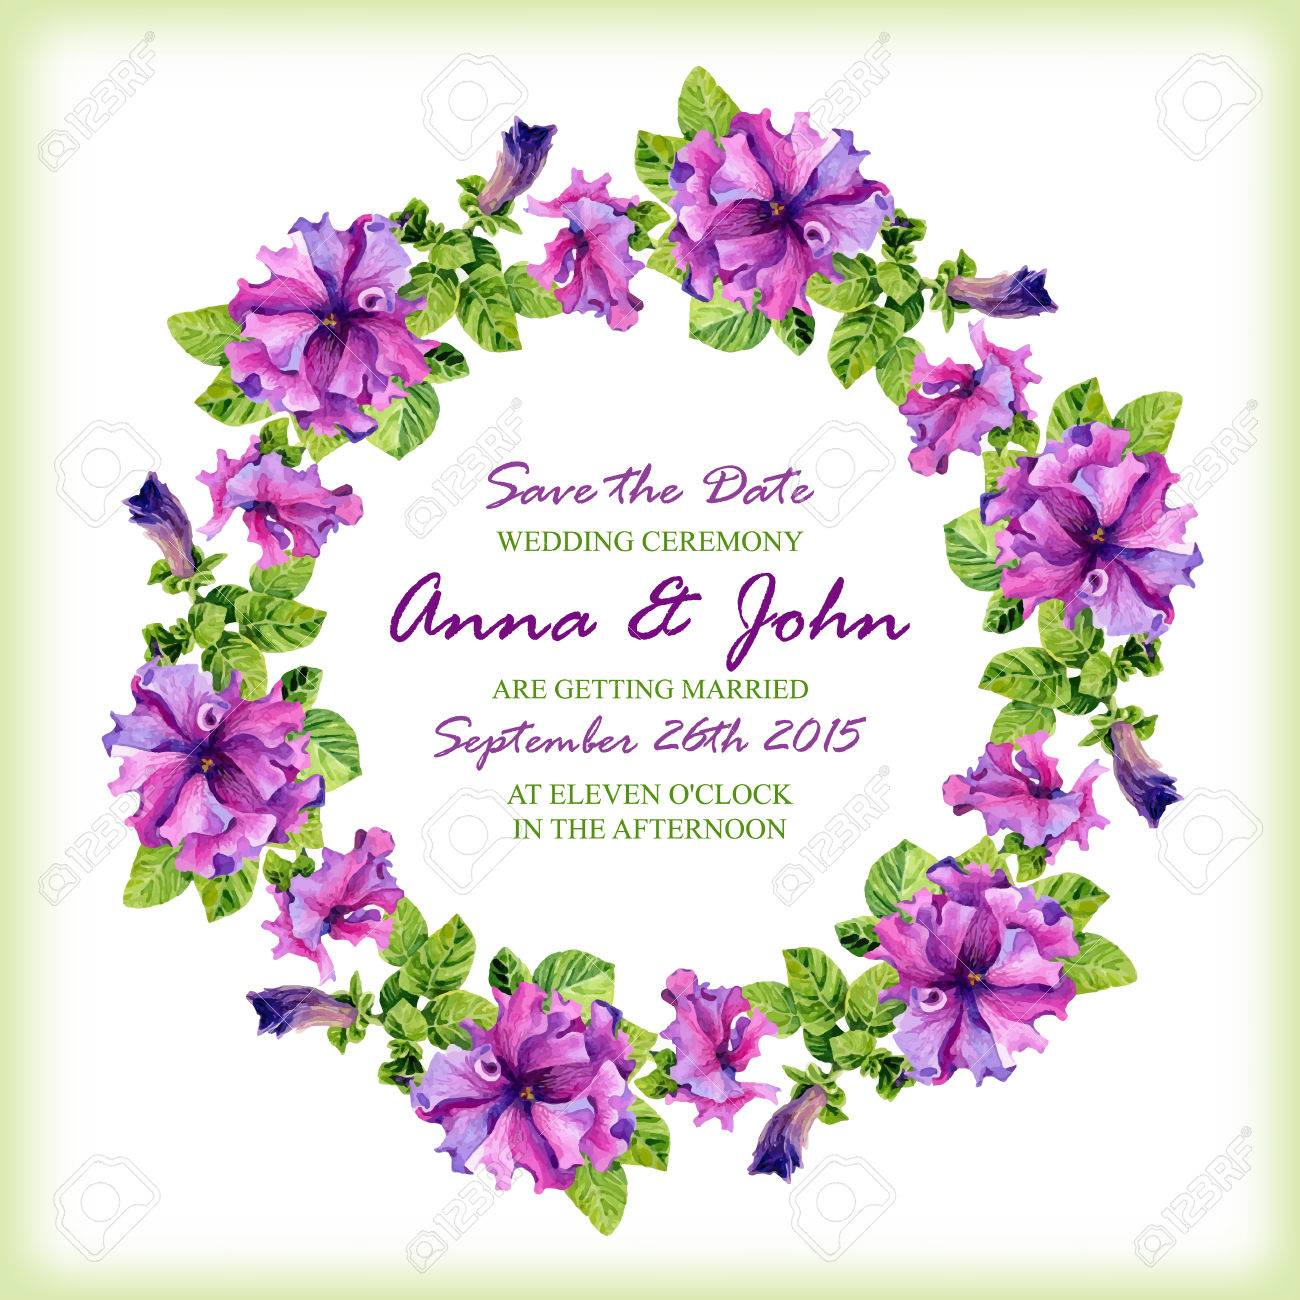 Wedding invitation design template with watercolor floral circular wedding invitation design template with watercolor floral circular frame vector background for special occasions stopboris Images